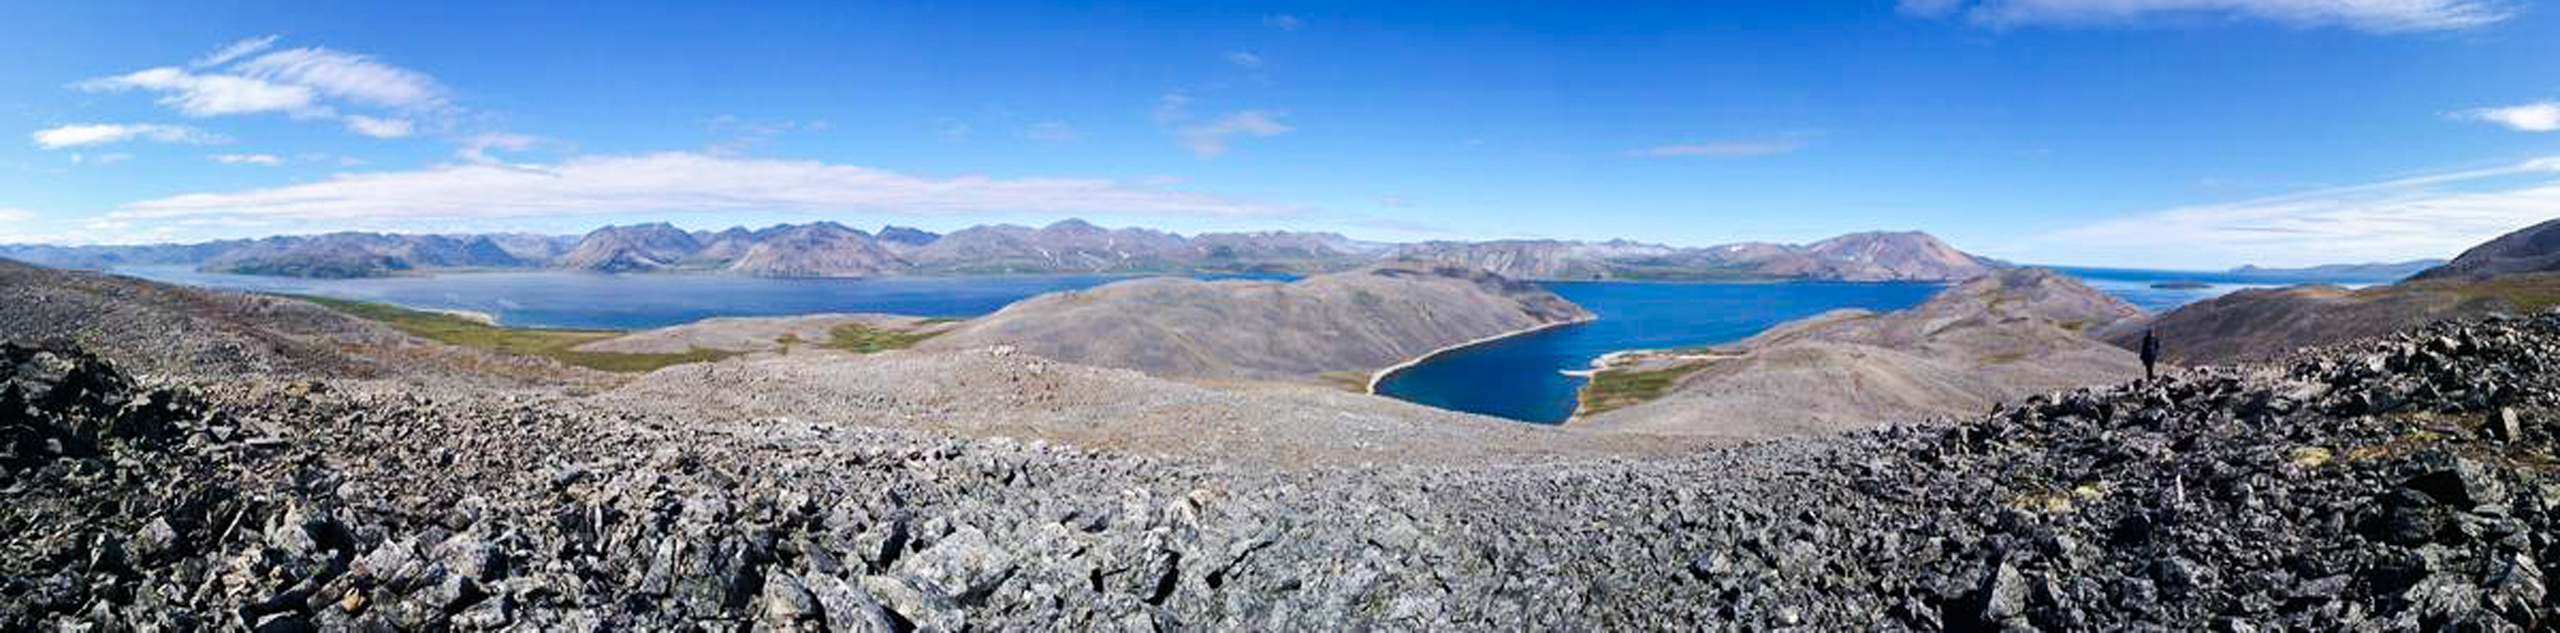 Chukotka: Trekking at the Edge of the Earth Tour